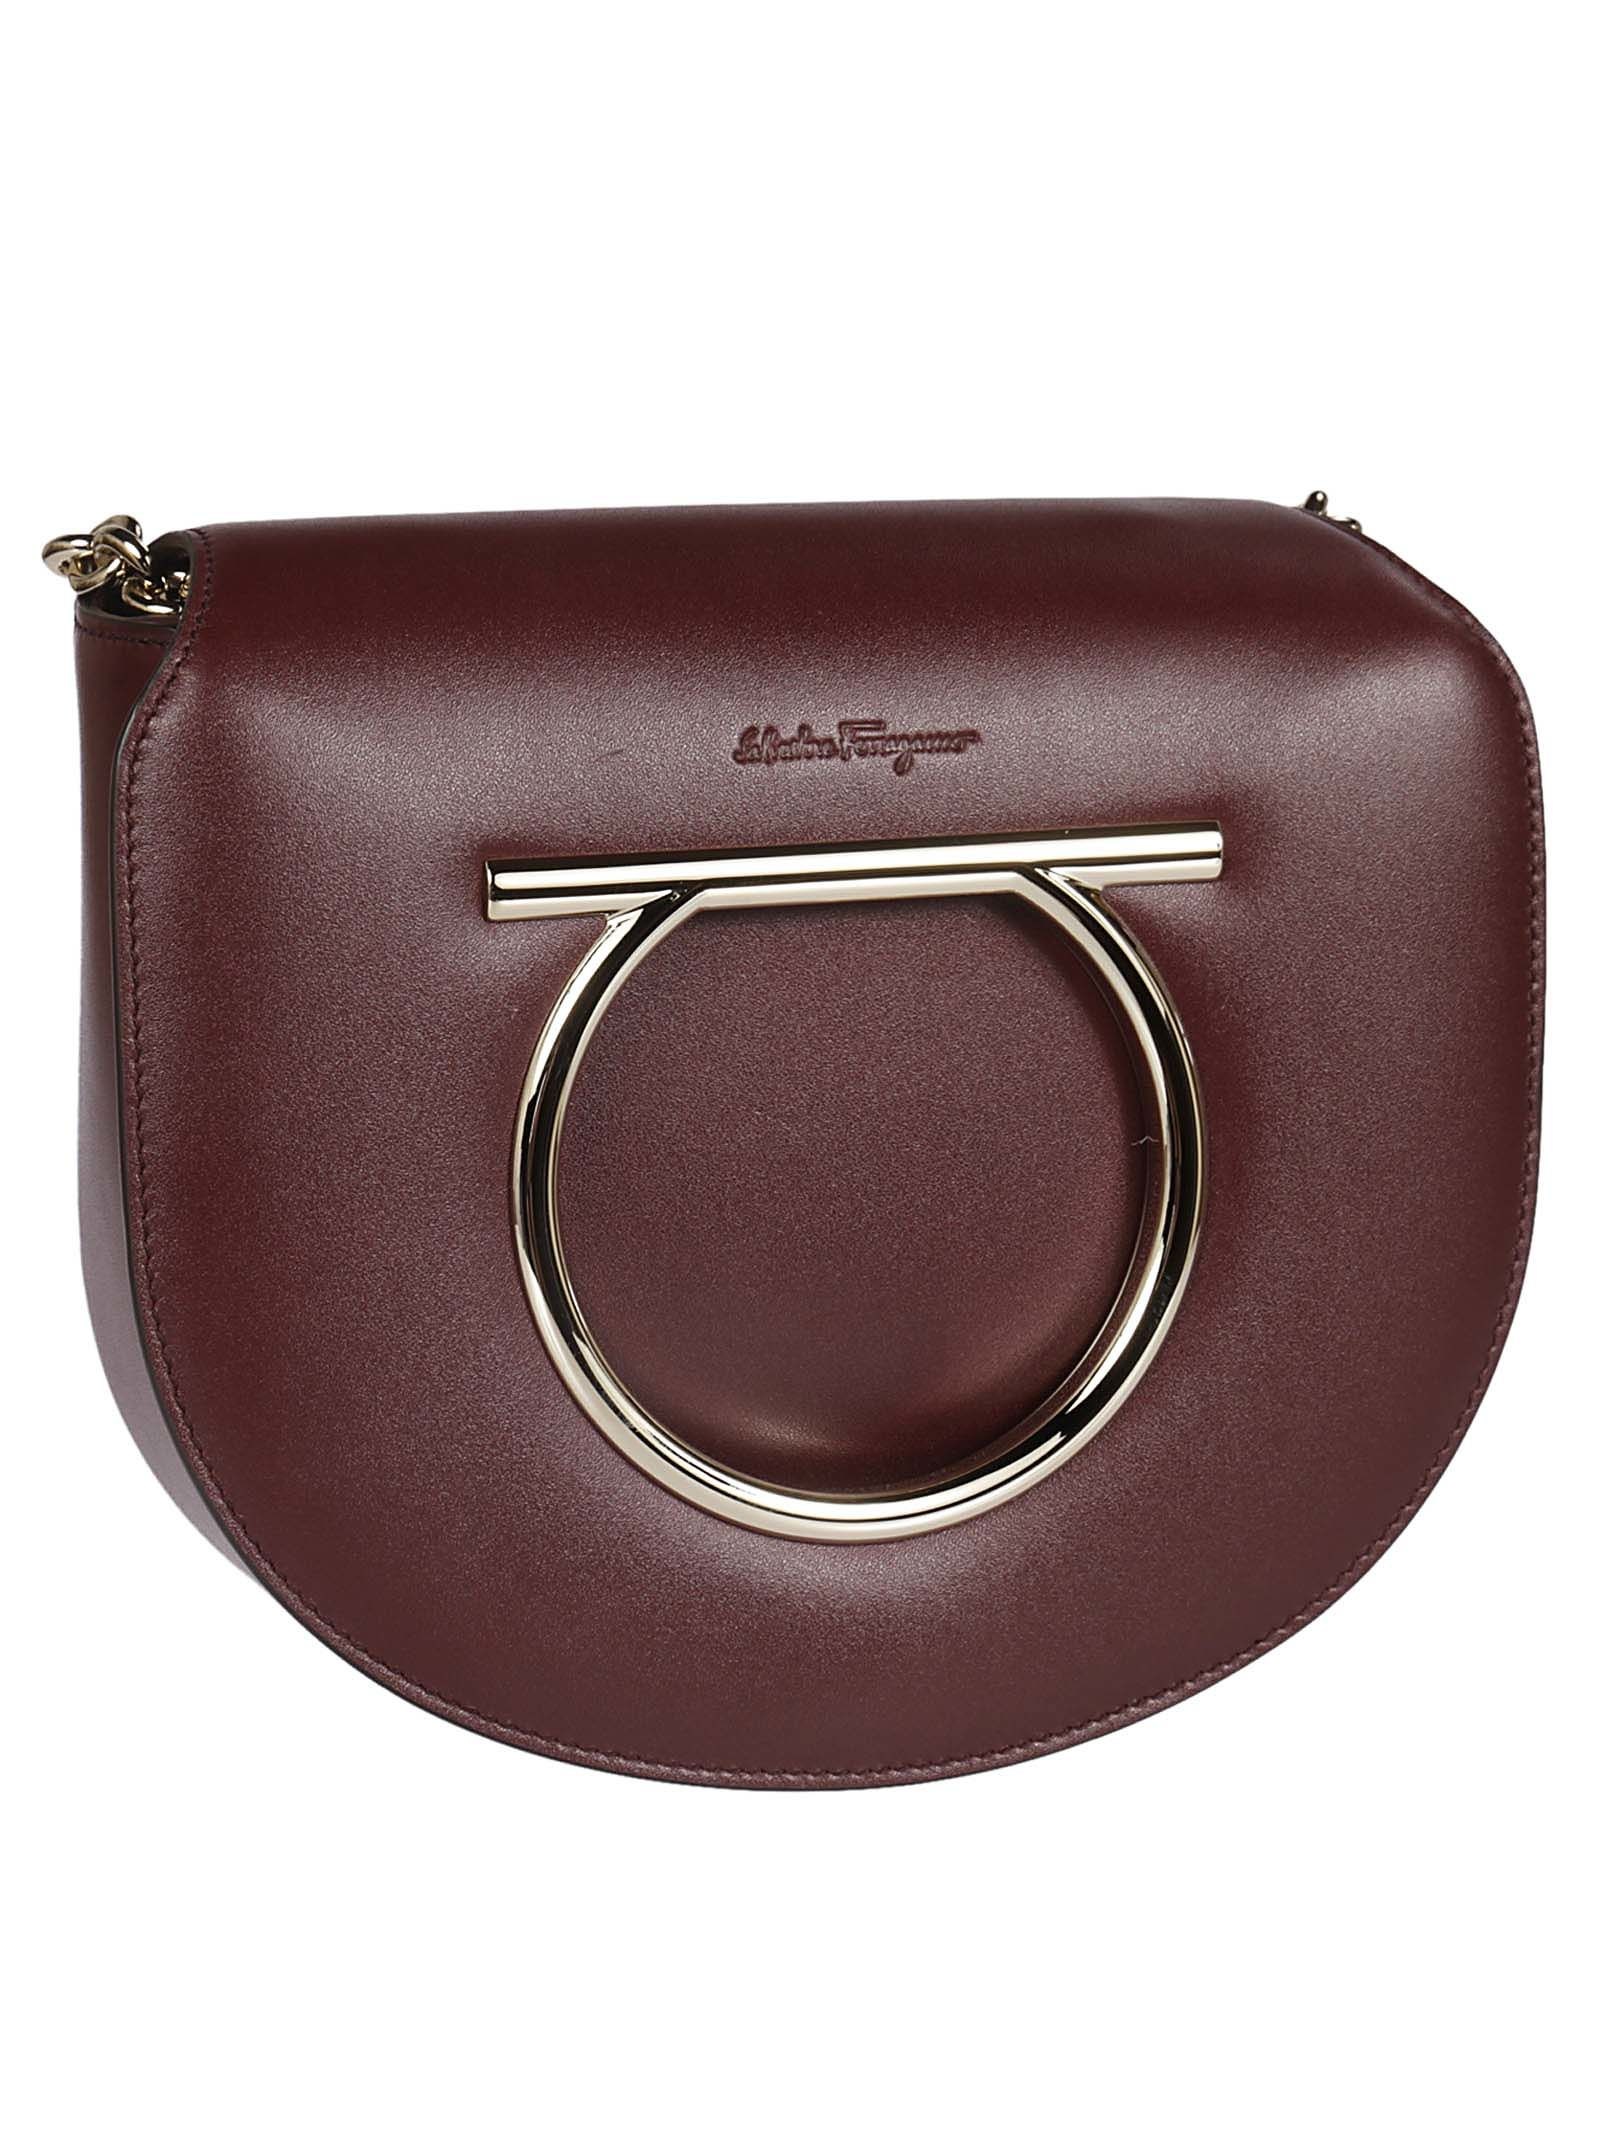 Salvatore Ferragamo Gancini Shoulder Bag Salvatore Ferragamo Gancini  Shoulder Bag ... ea29b6ceb0